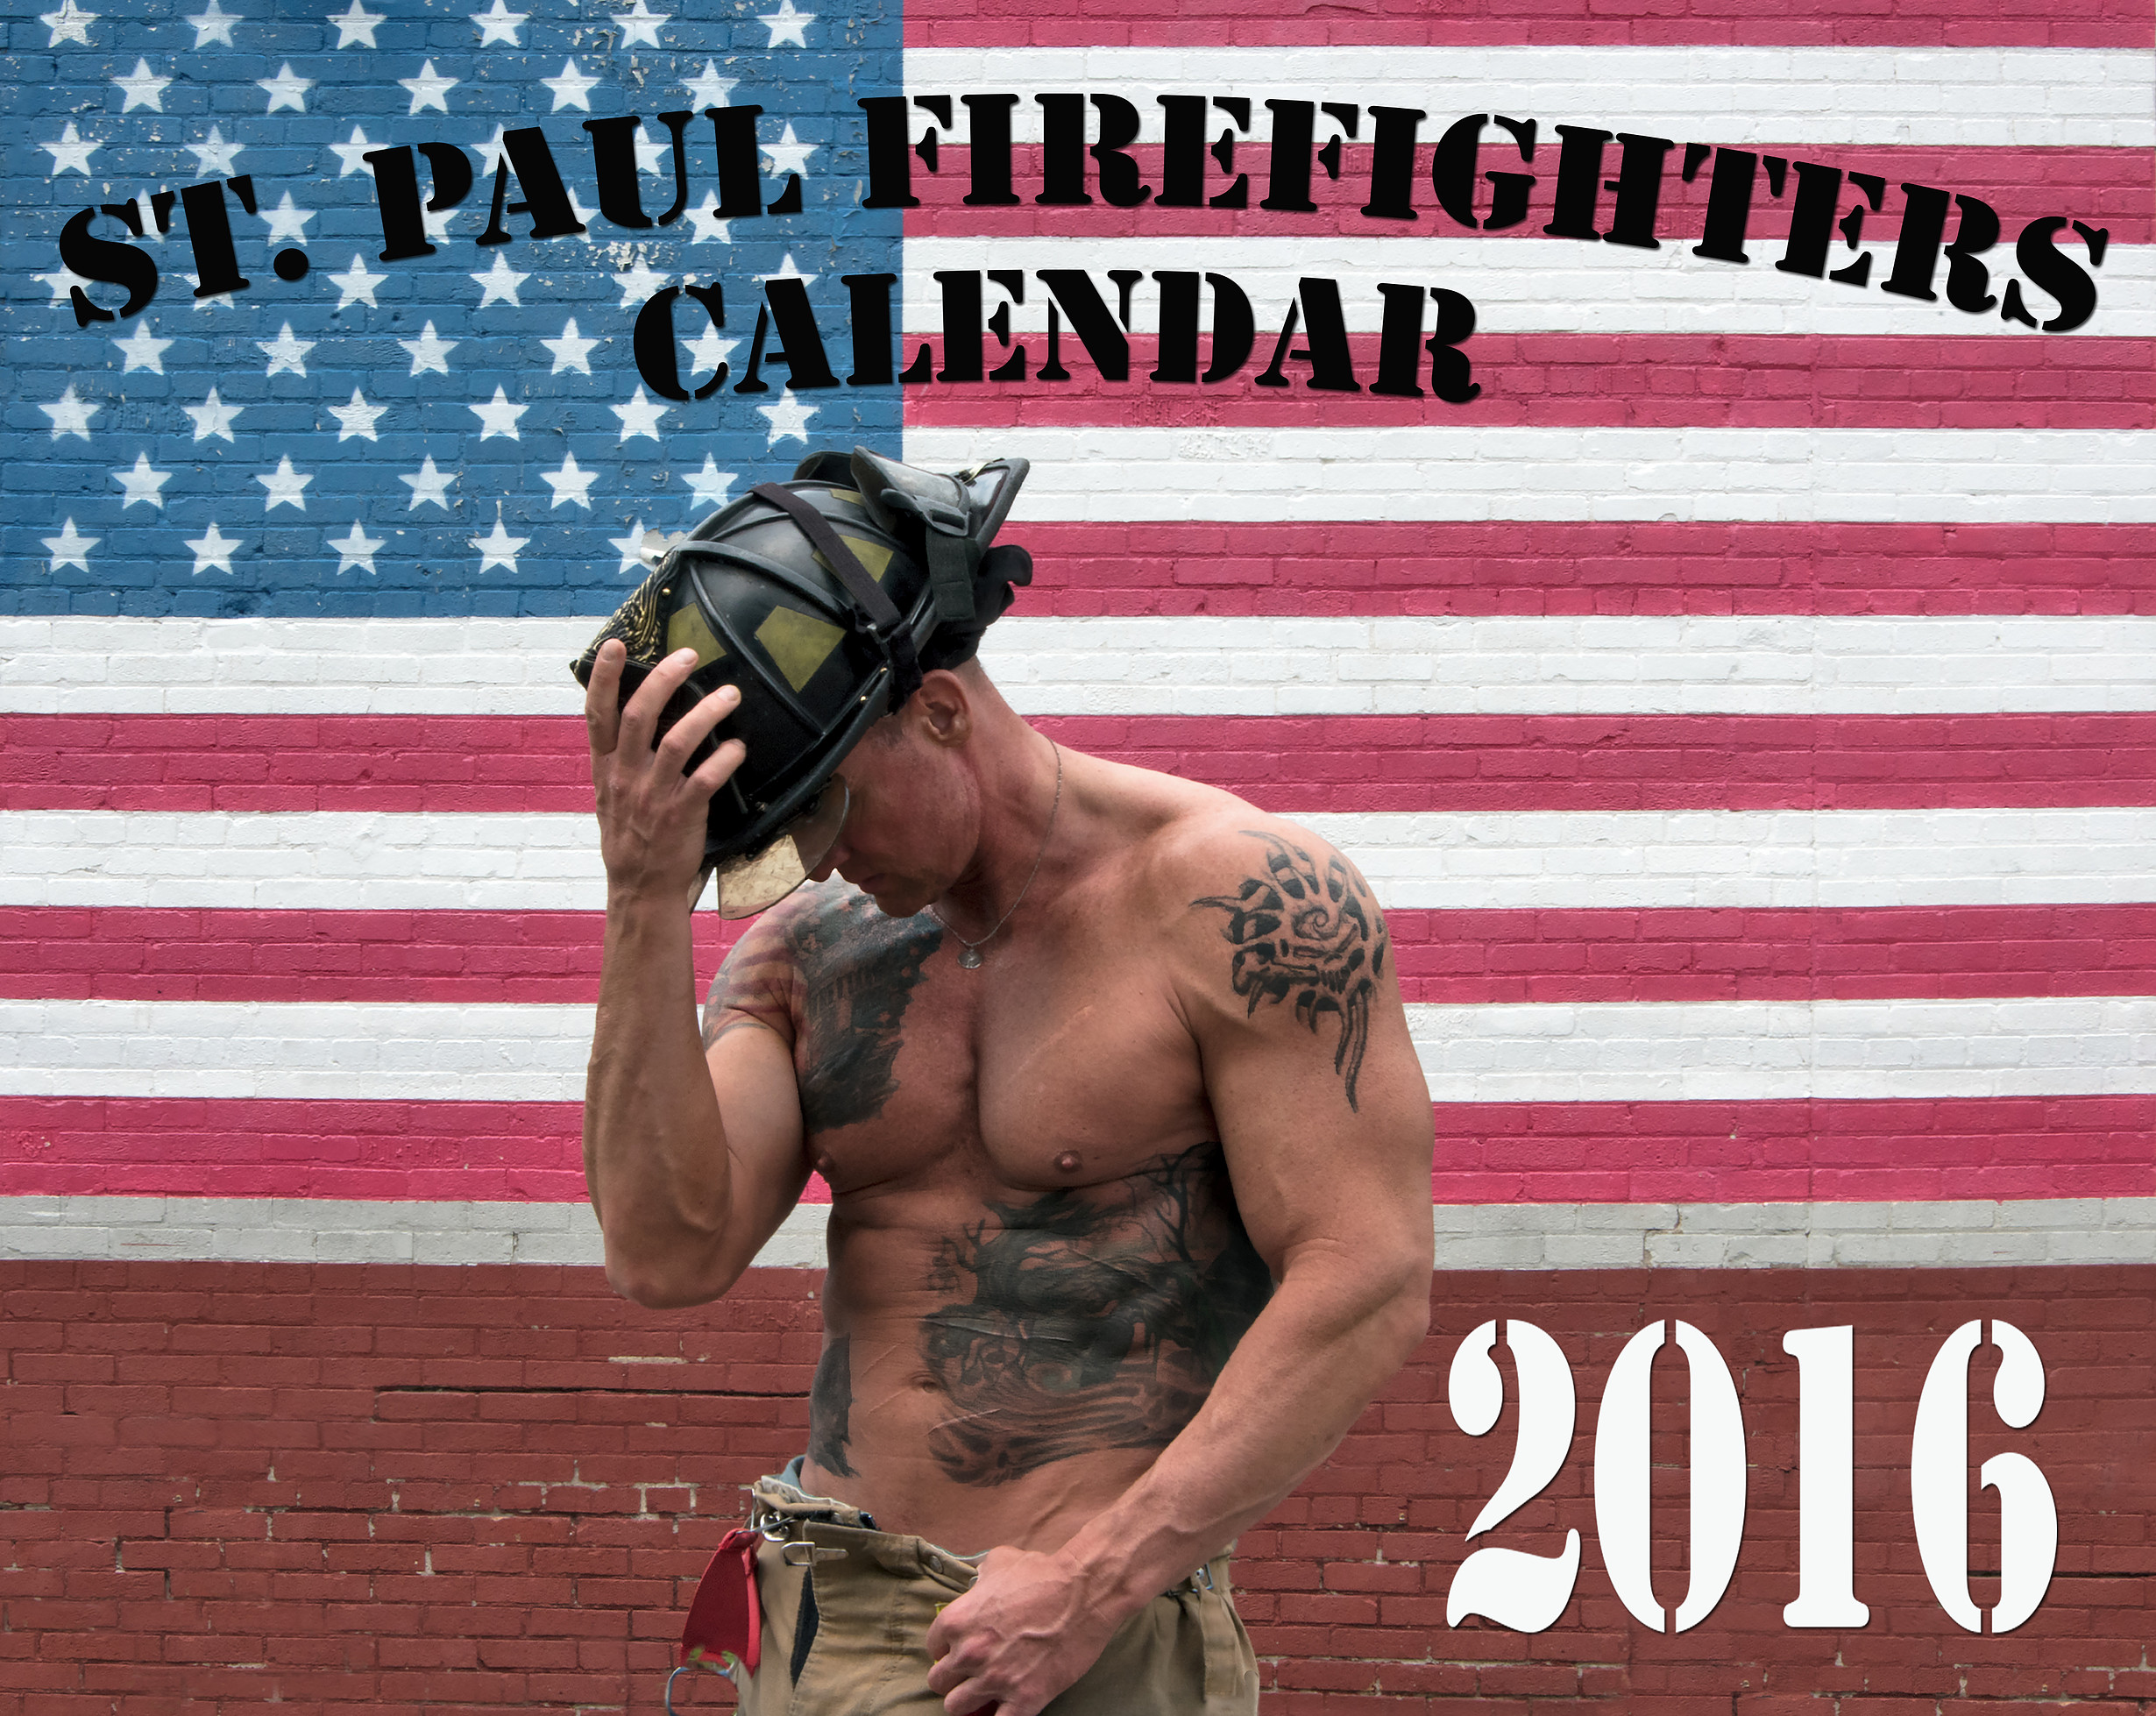 alyssa boldischar st paul firefighters calendar 2016.jpg